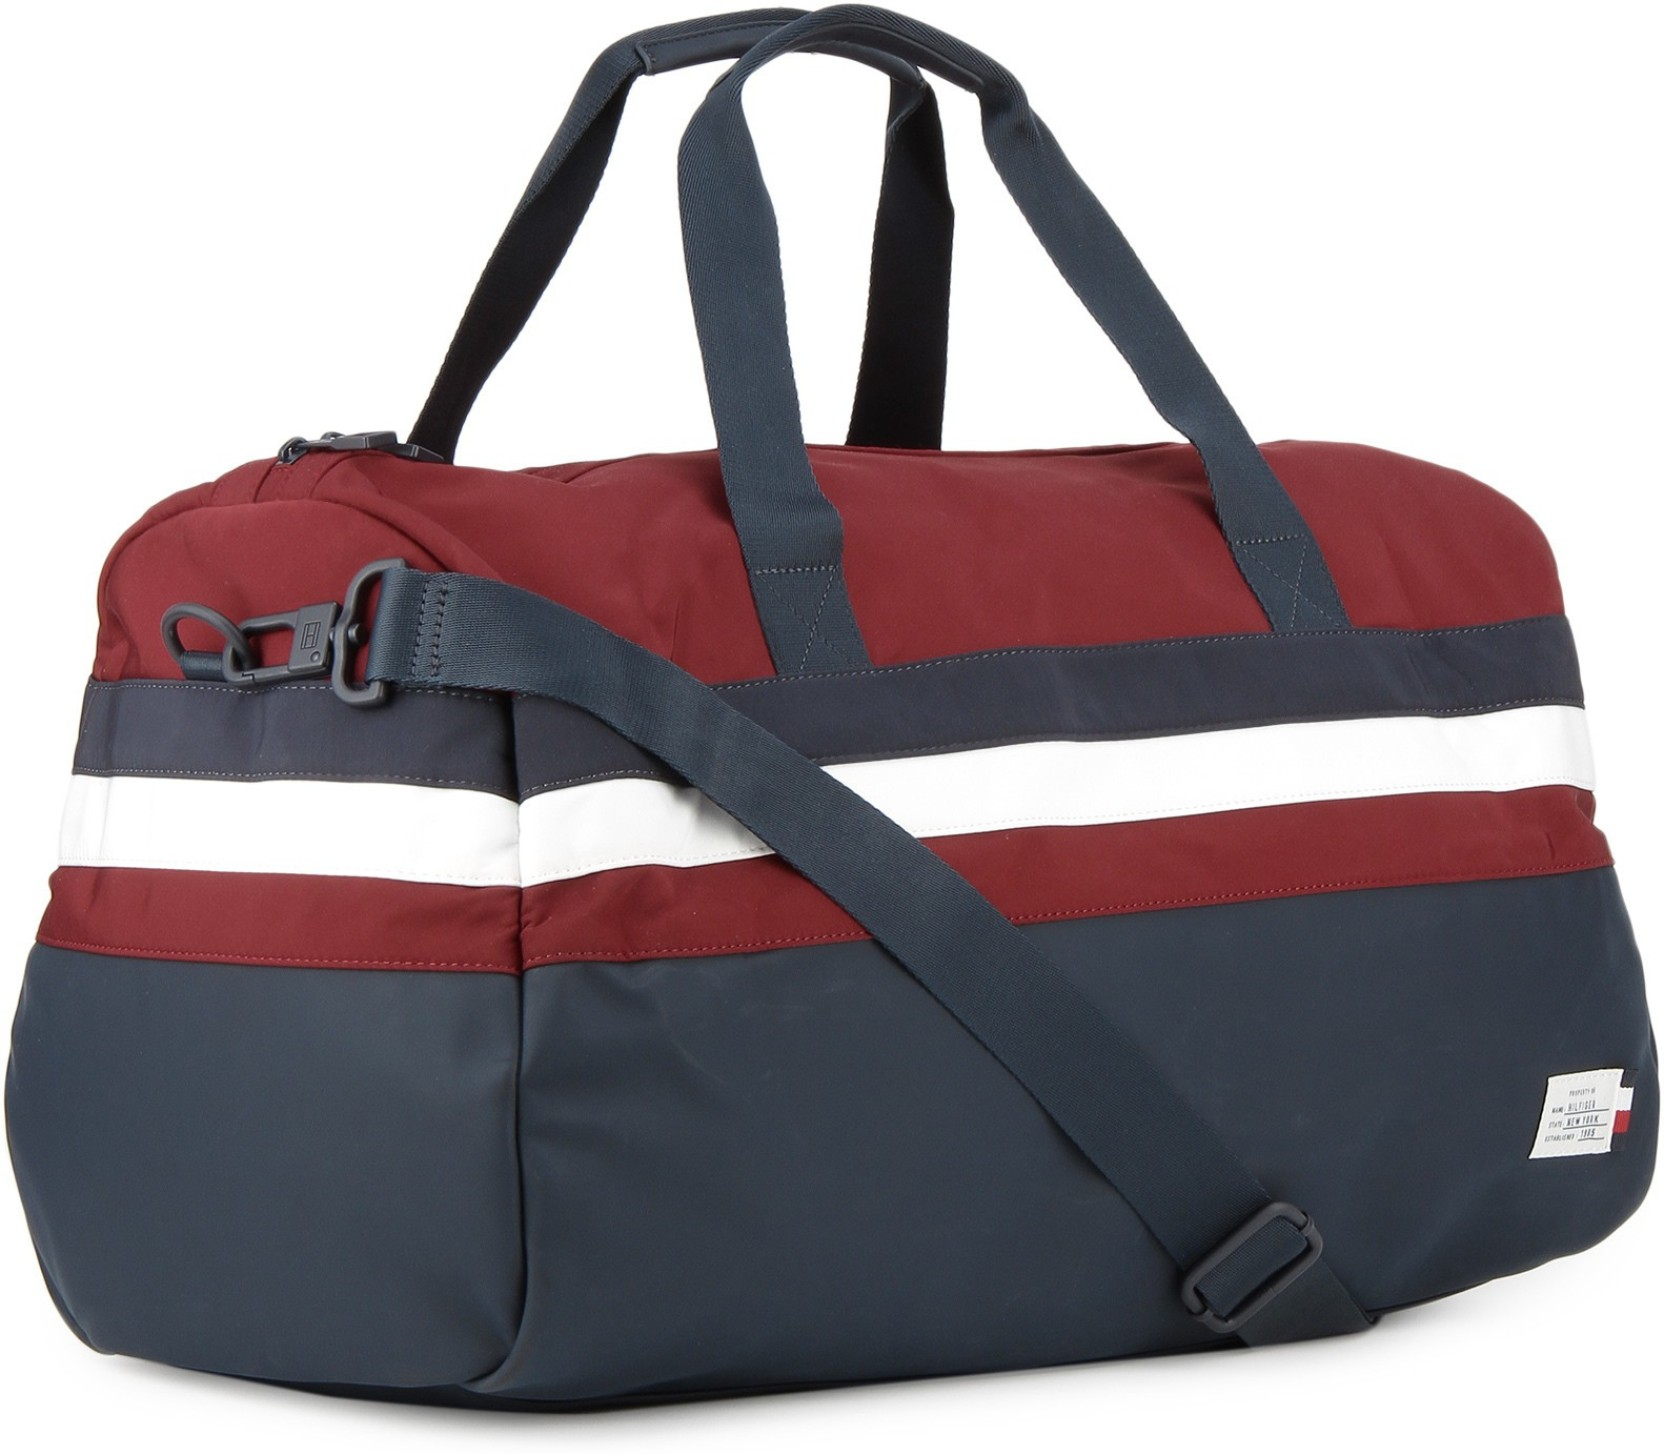 c0342a4e Tommy Hilfiger Duffle Bag With Wheels | Building Materials Bargain ...